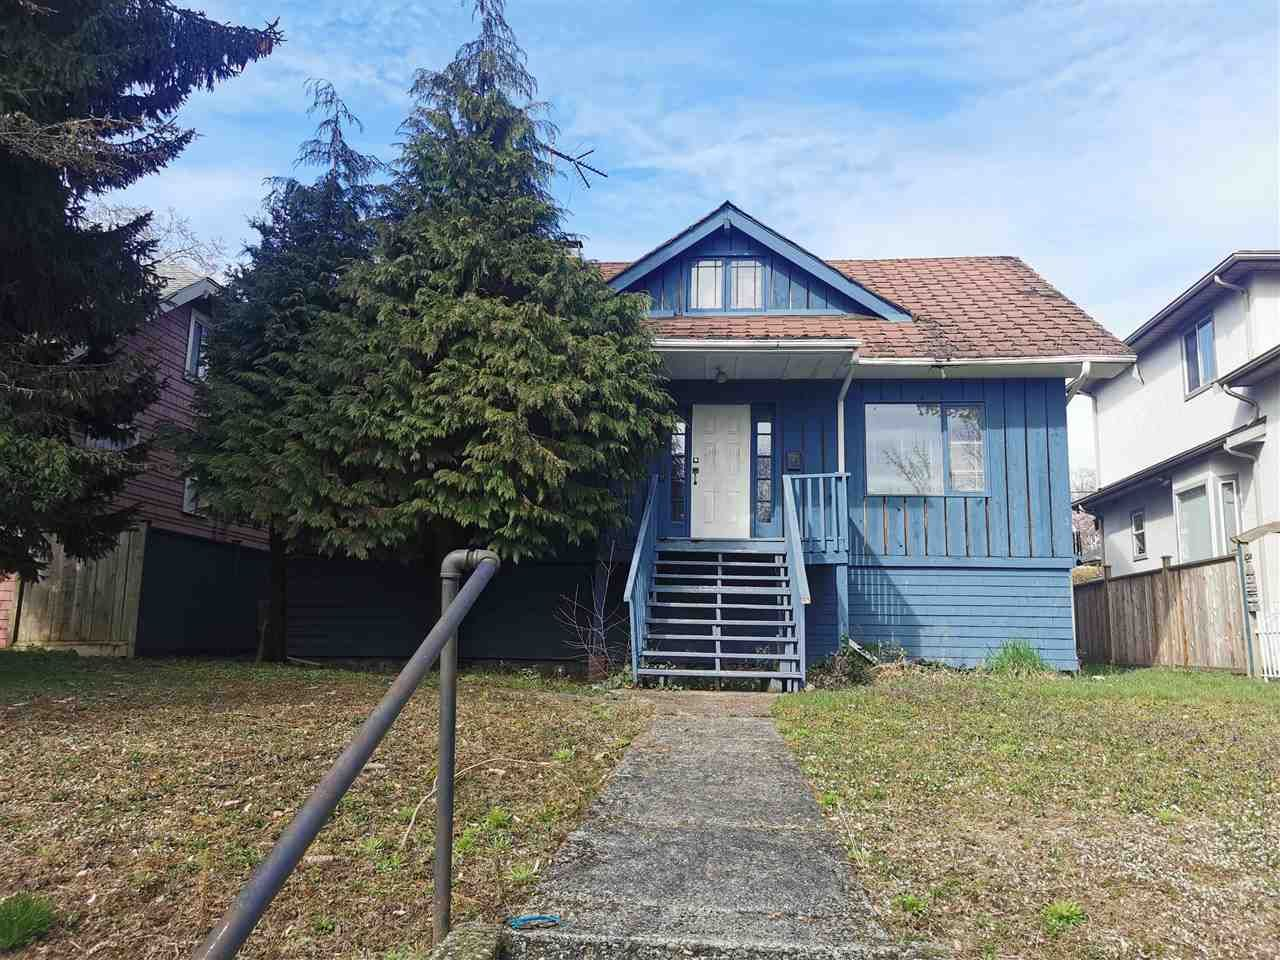 Main Photo: 3349 W 37TH Avenue in Vancouver: Dunbar House for sale (Vancouver West)  : MLS®# R2554609